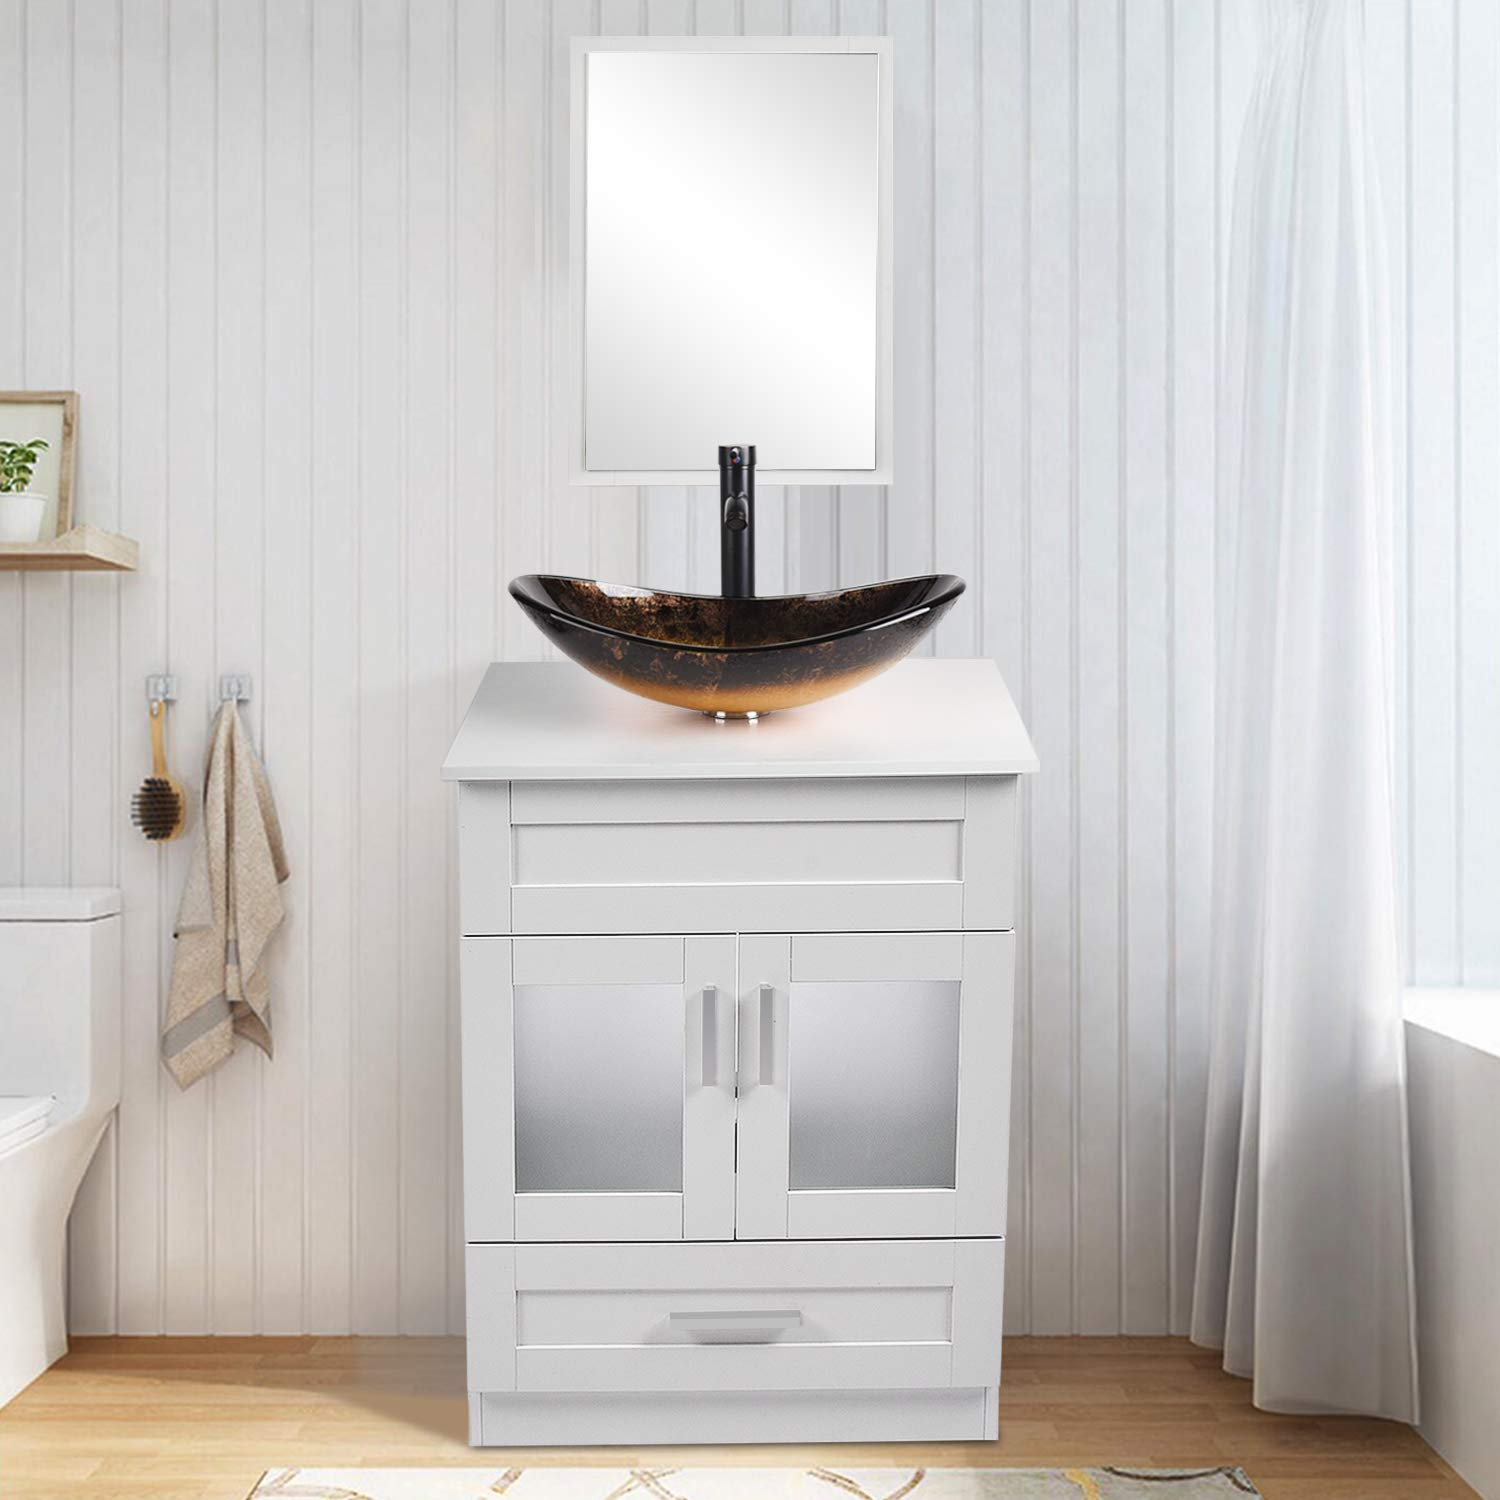 24 inch bathroom vanity set with sink pvc board cabinet vanity combo with counter top glass vessel sink vanity mirror and 1 5 gpm faucet